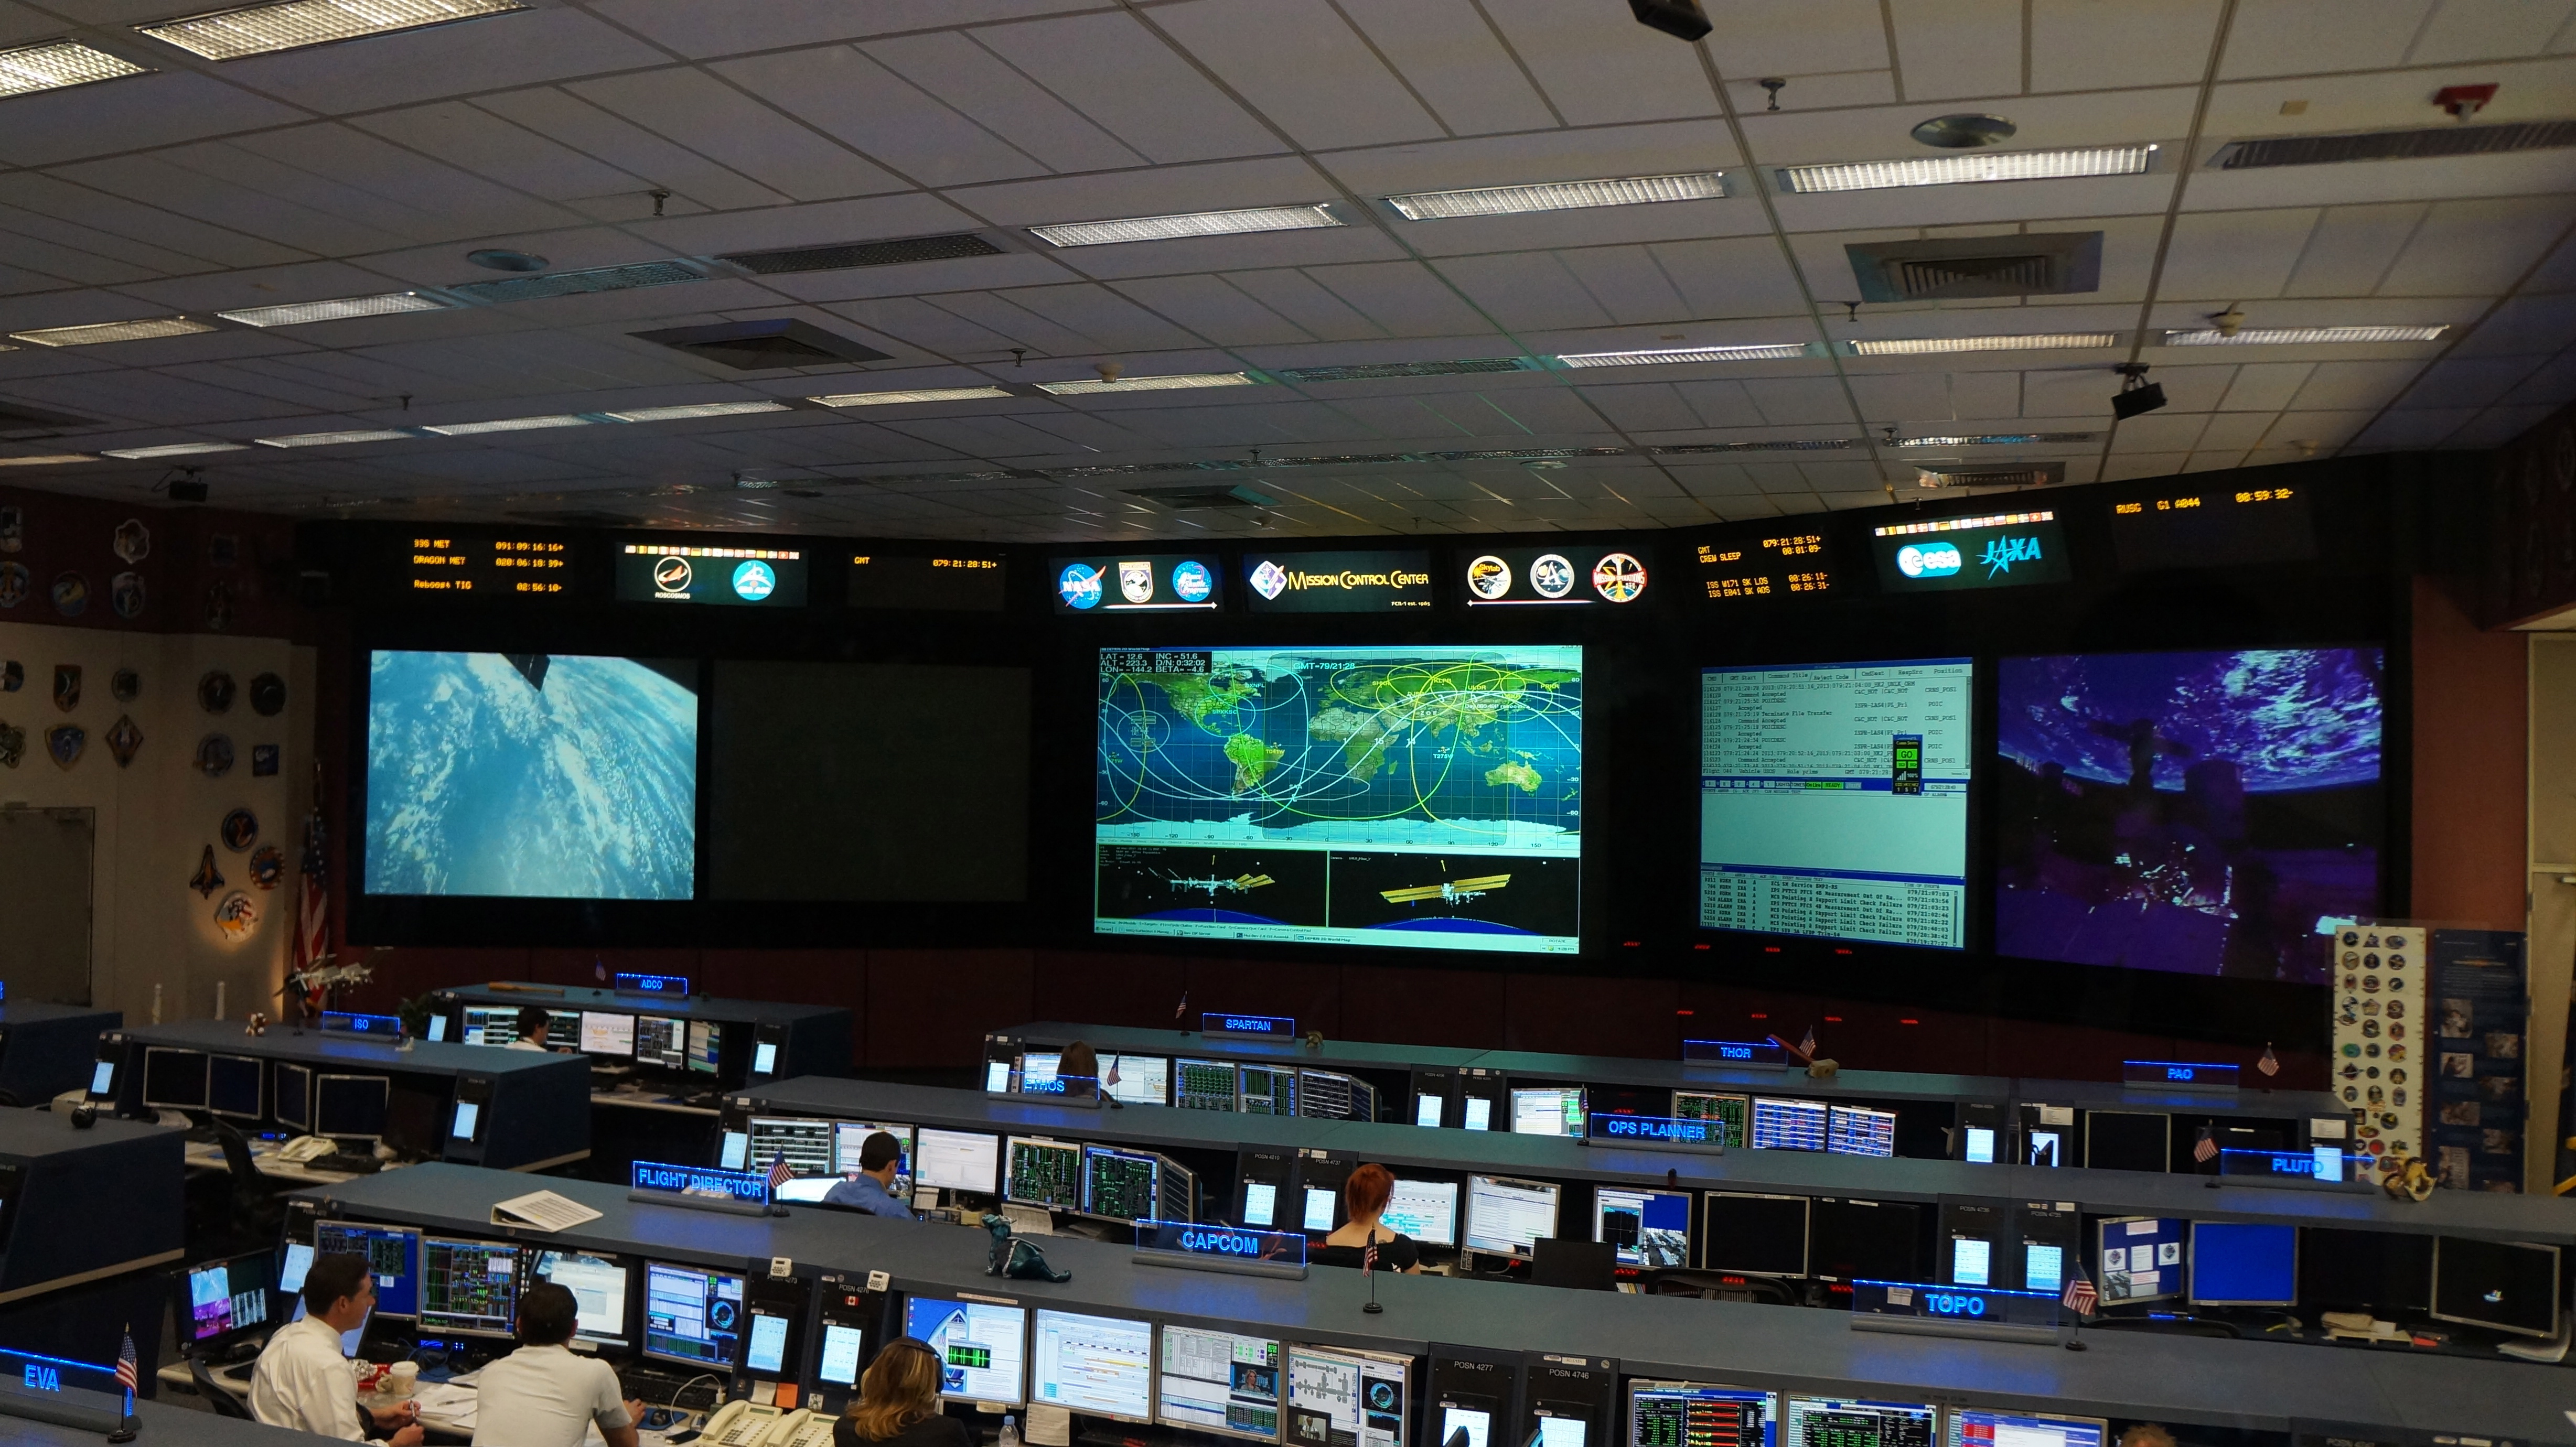 houston space station controls - photo #30